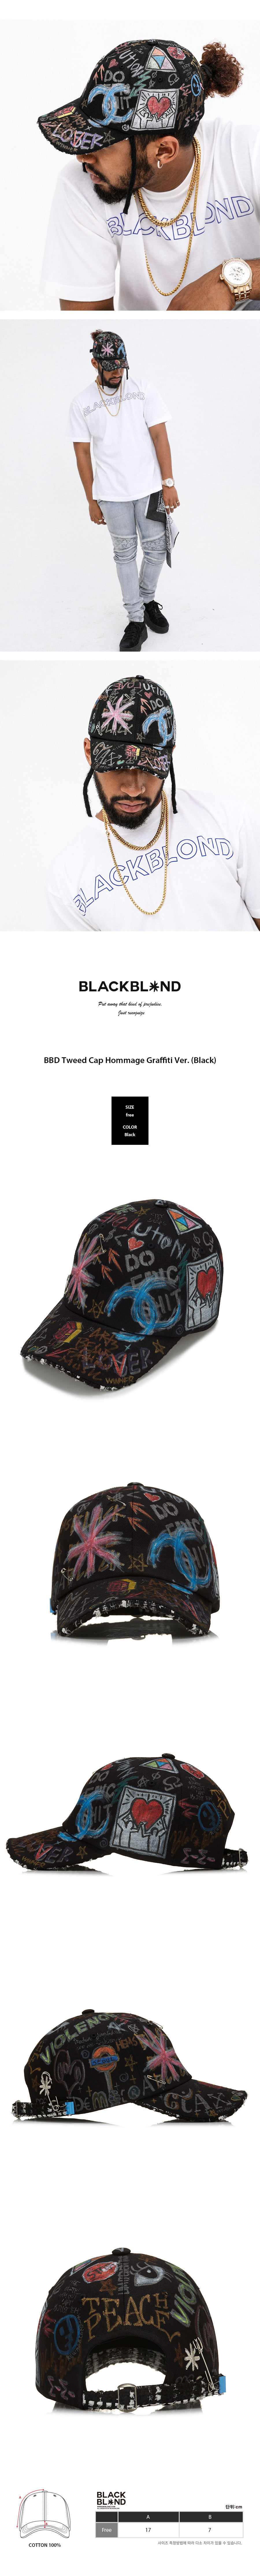 블랙블론드 BLACKBLOND - BBD Tweed Cap Graffiti Ver. (Black)